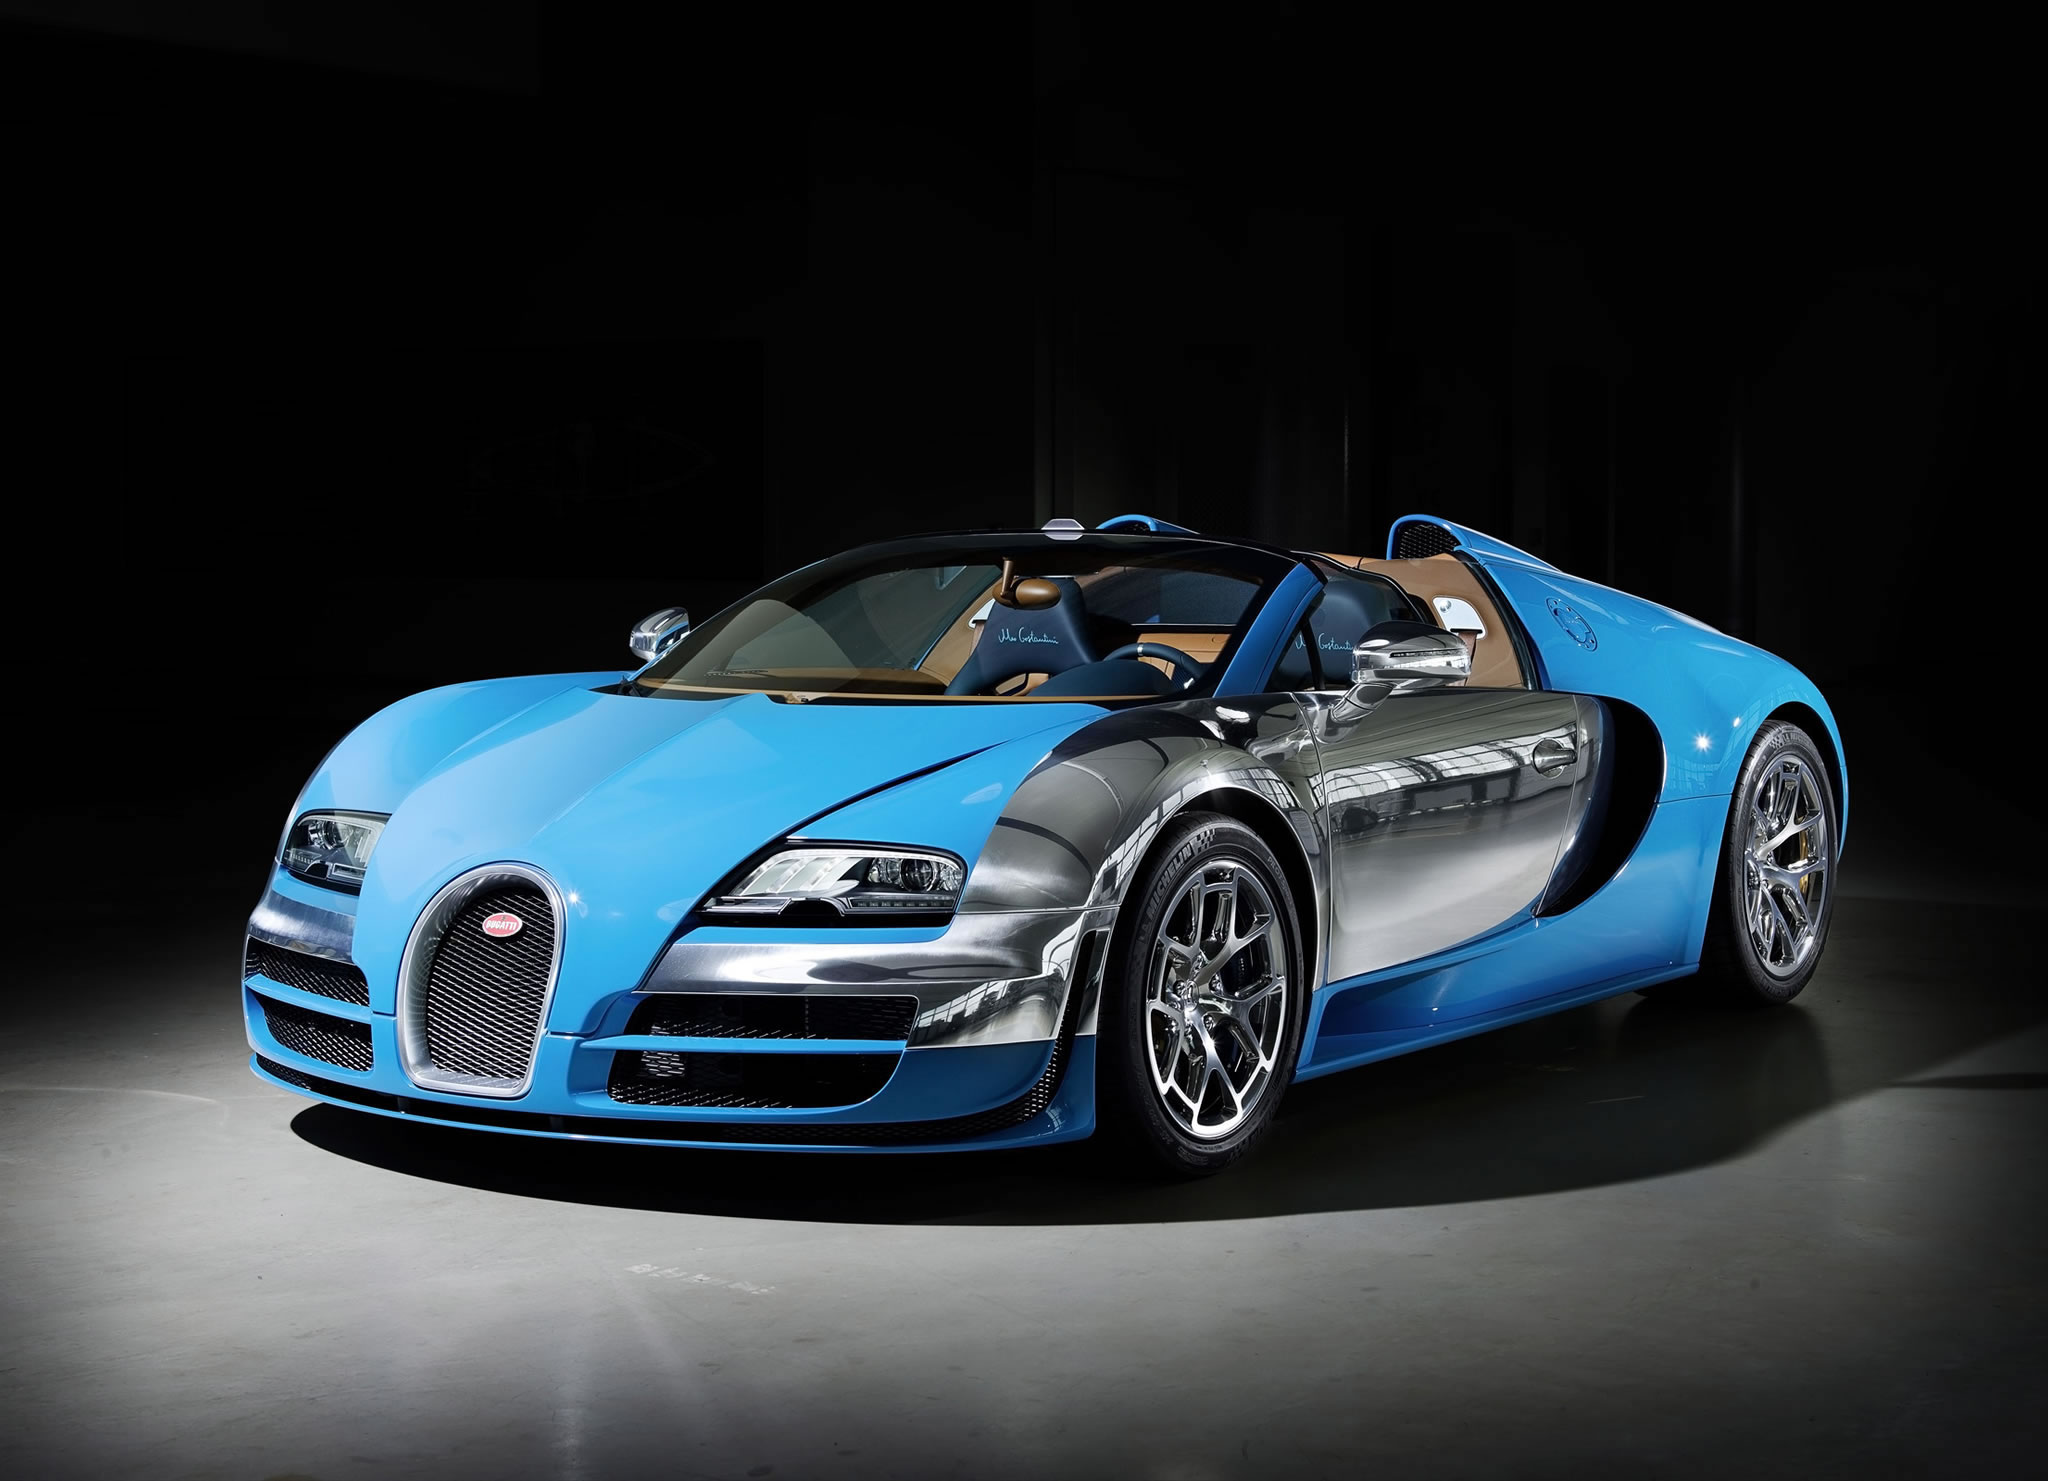 2014 bugatti veyron 16 4 grand sport vitesse meo costantini front photo bugatti dark blue. Black Bedroom Furniture Sets. Home Design Ideas